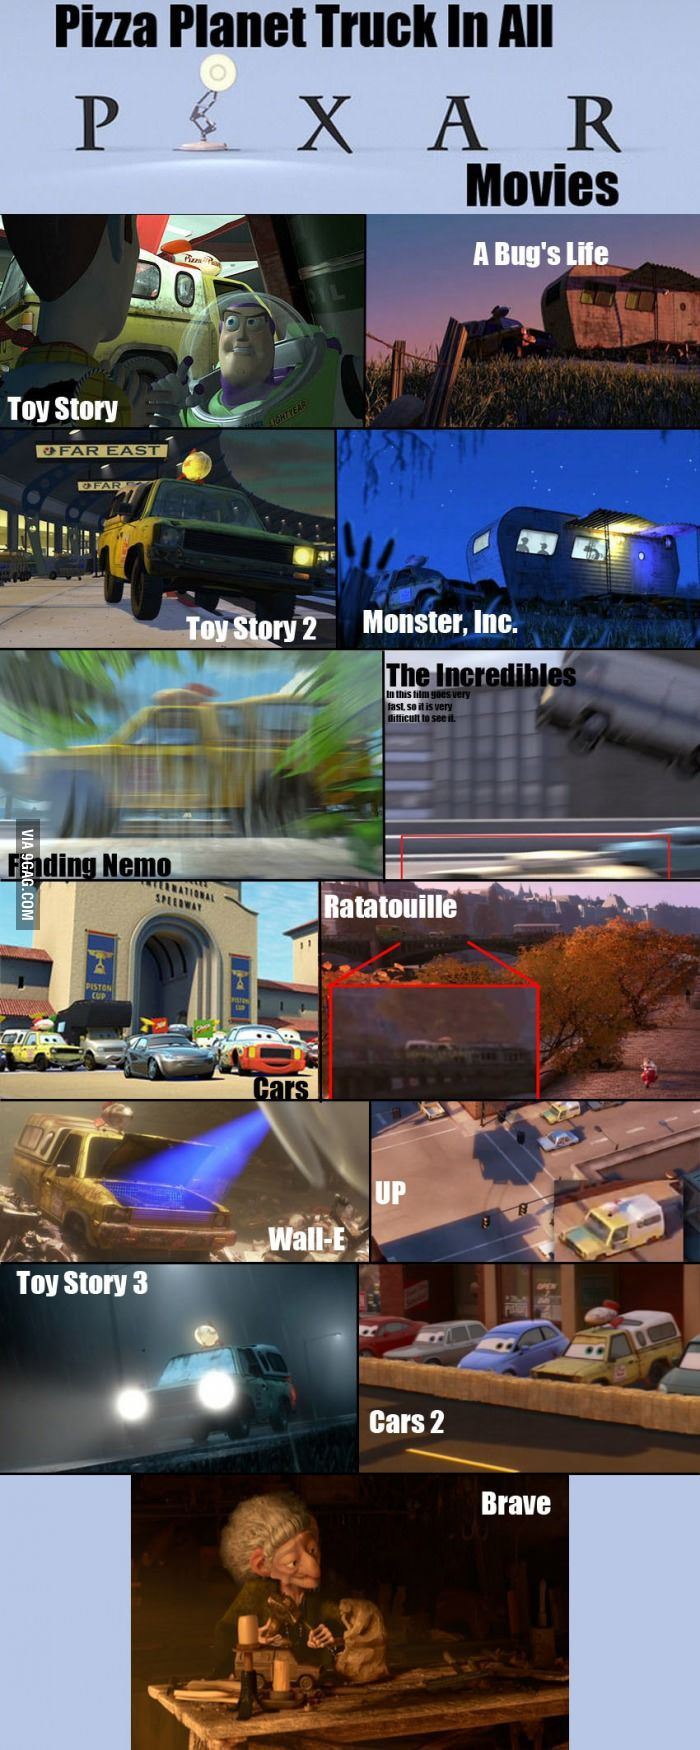 9GAG - Pizza Planet Truck In All Pixar Movies